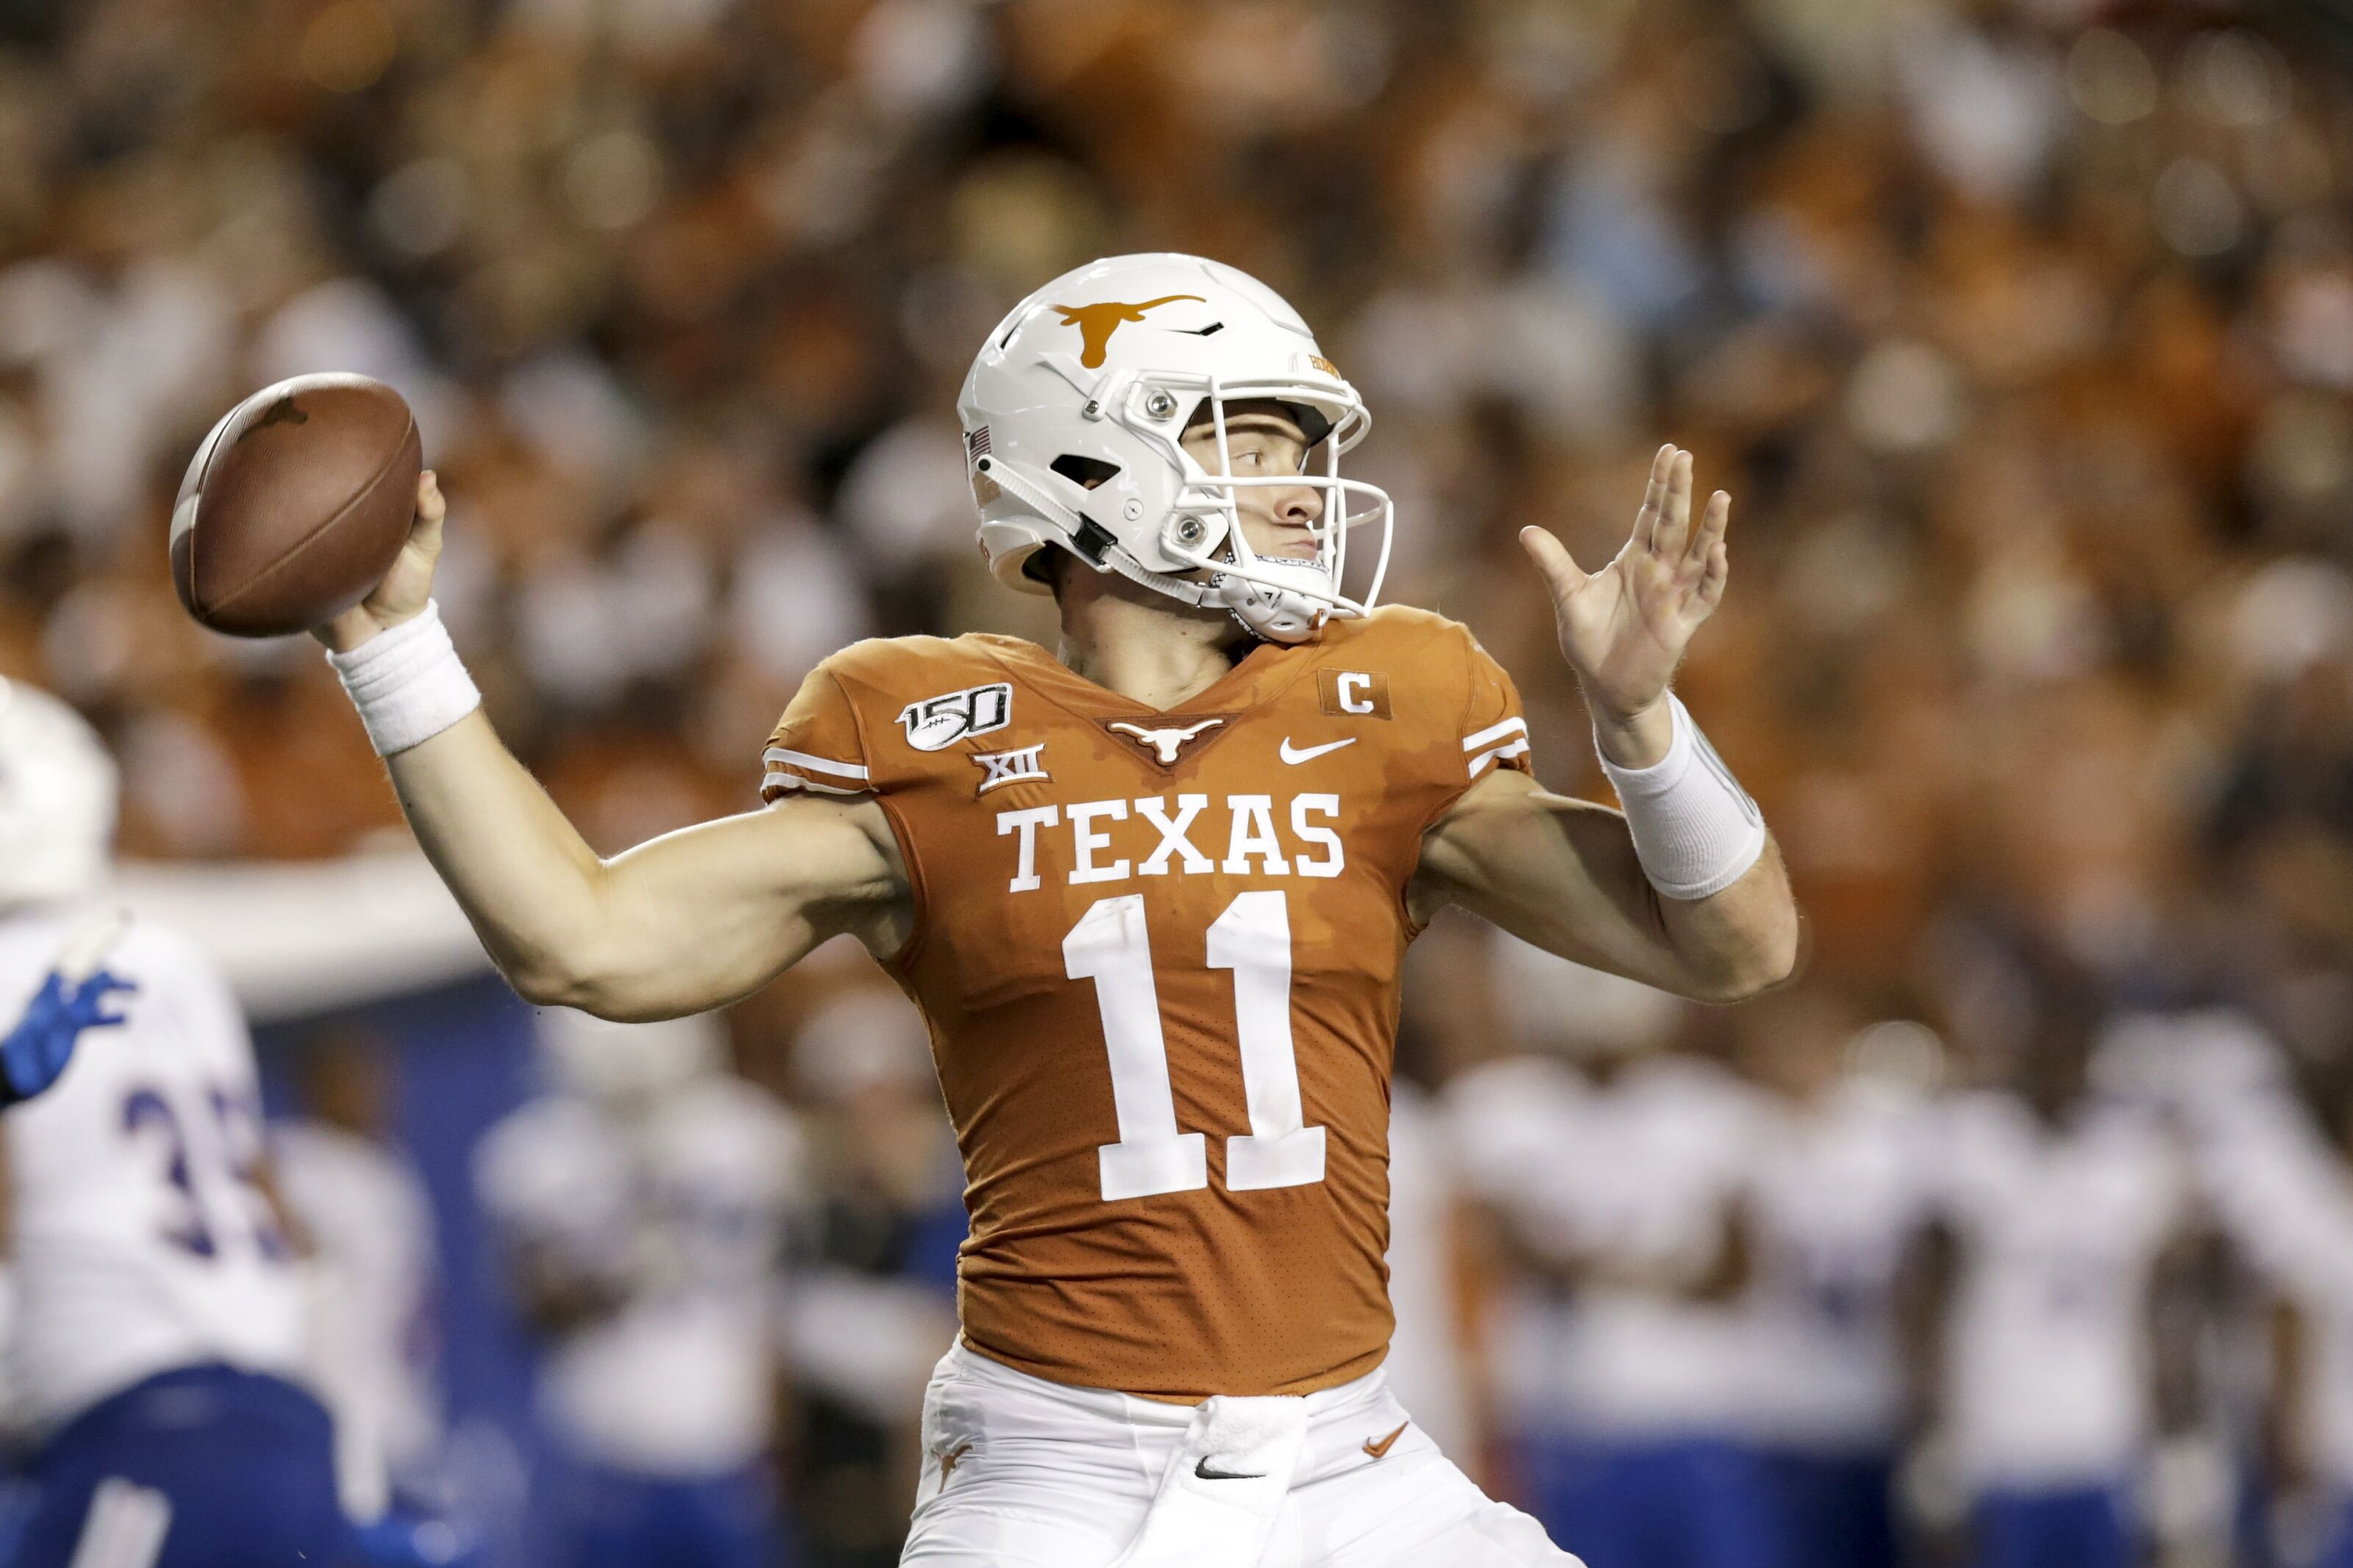 Texas football needs to get back on track vs. Rice in Week 3